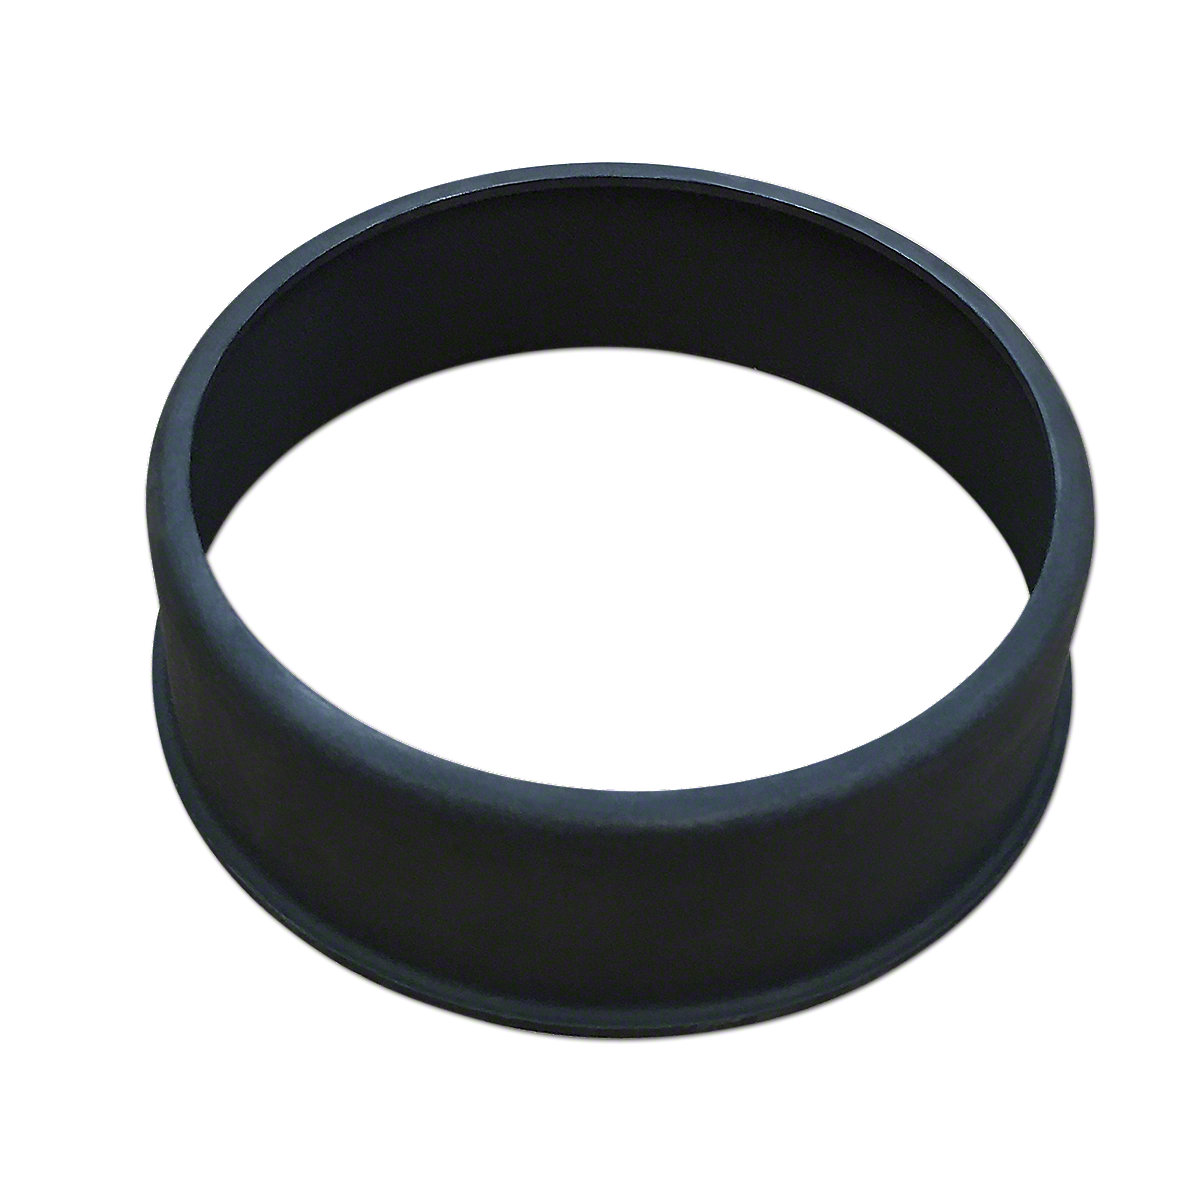 IHS3658 Front Wheel Seal Retainer (Wear Sleeve)